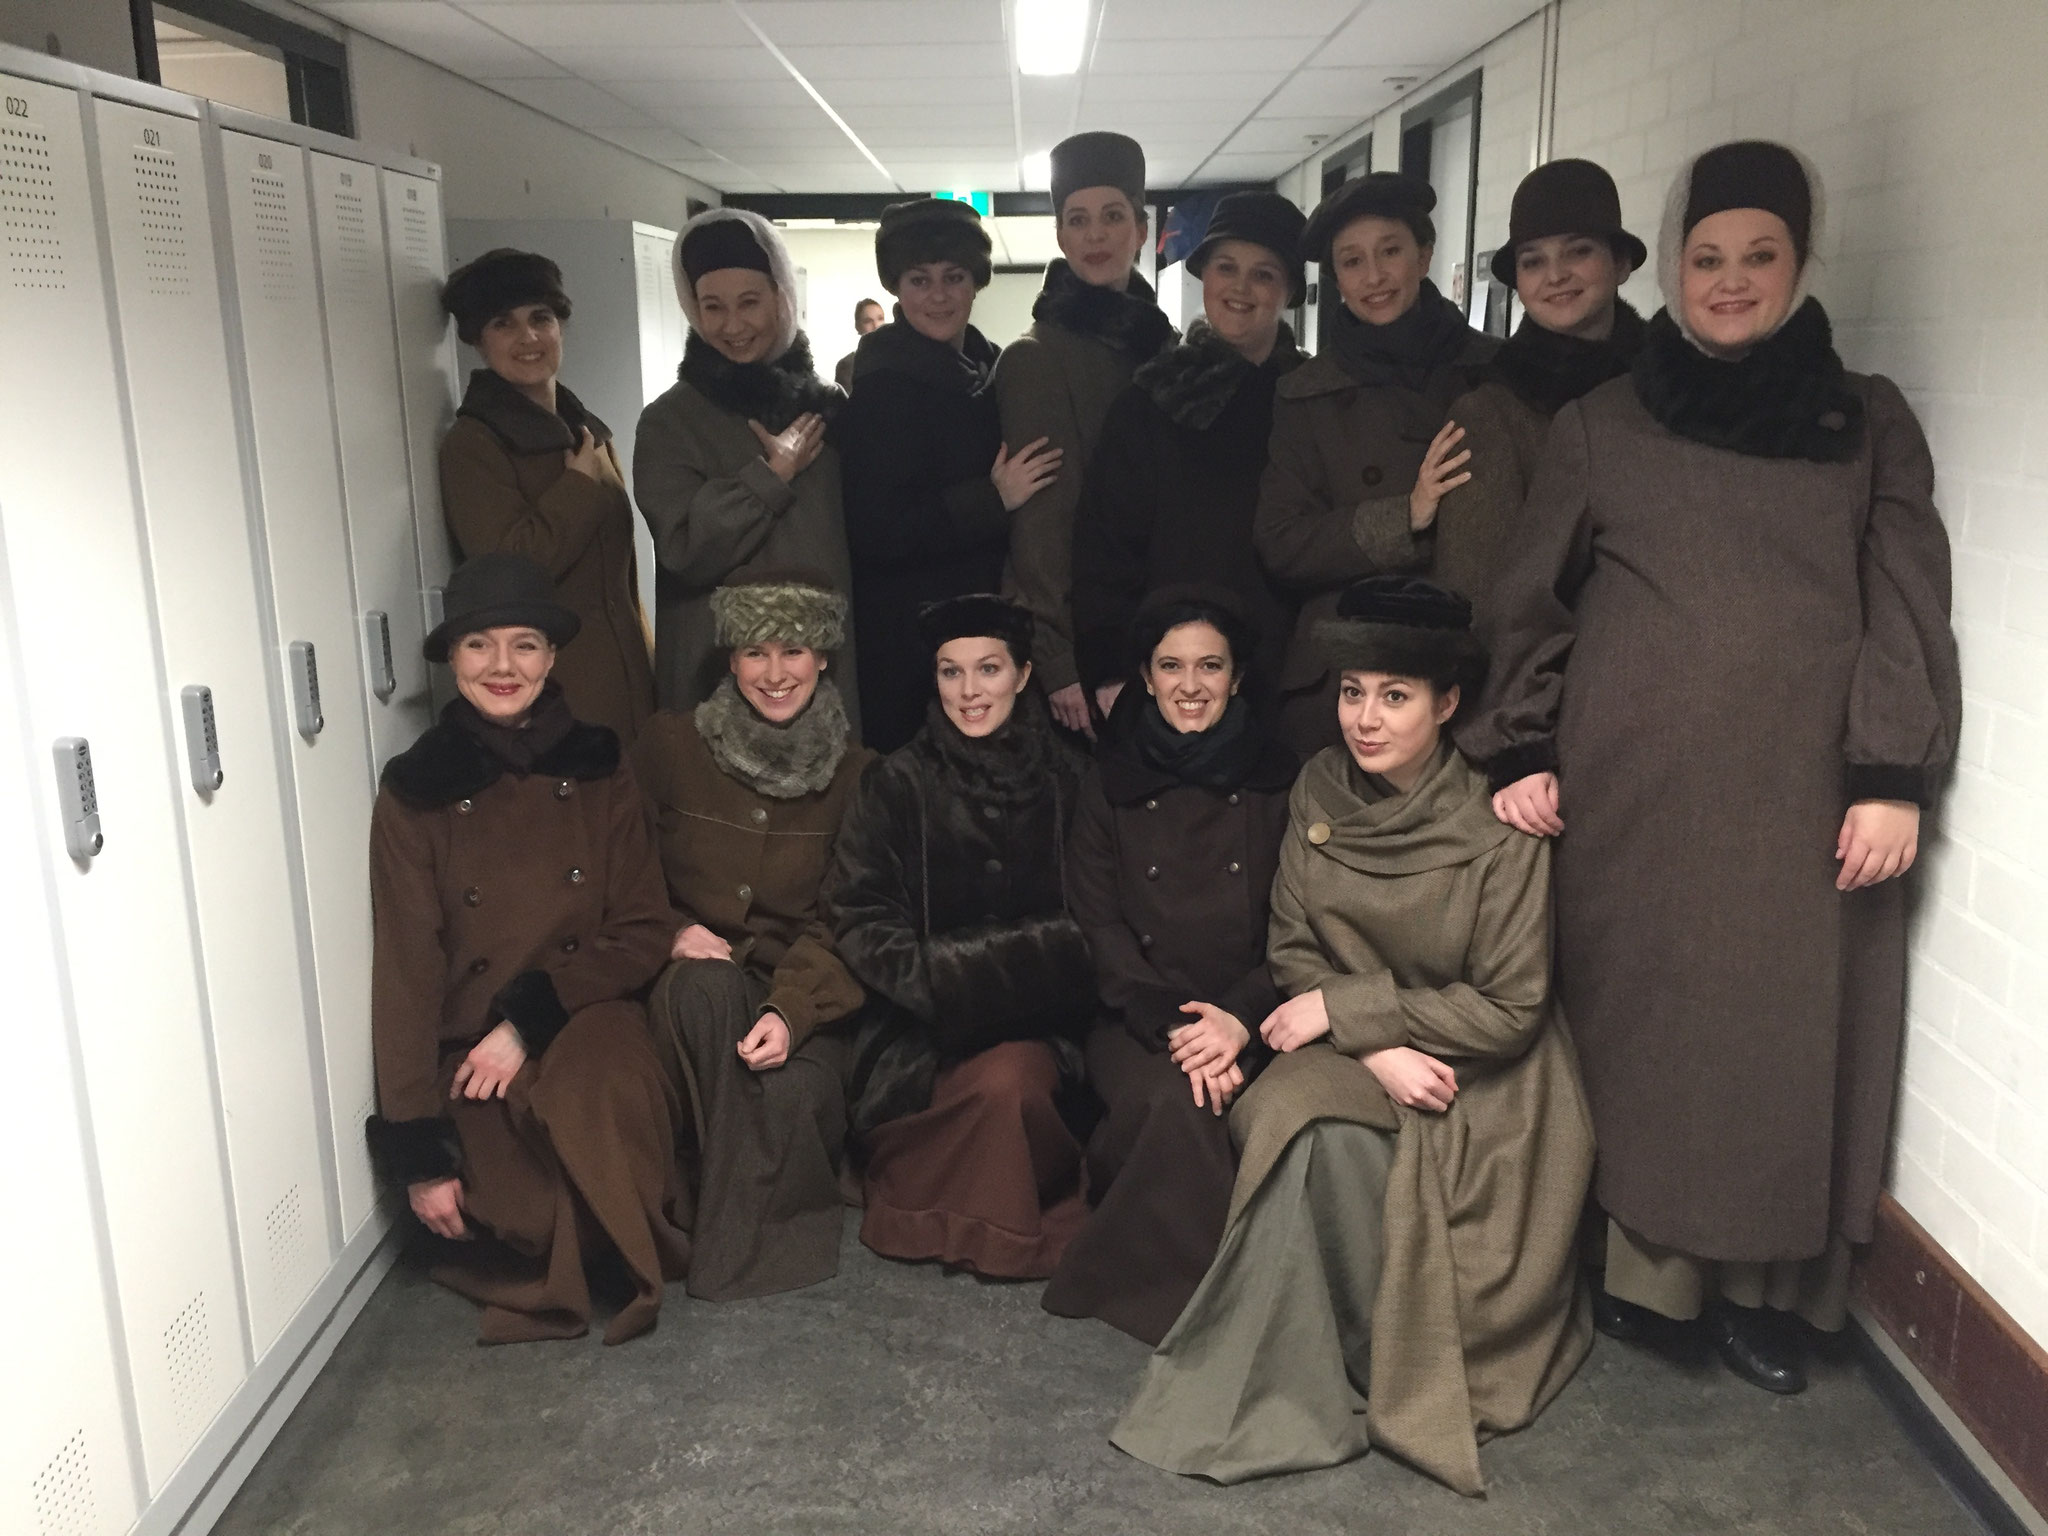 Back Stage Prins Igor production '17 - Nationale Opera